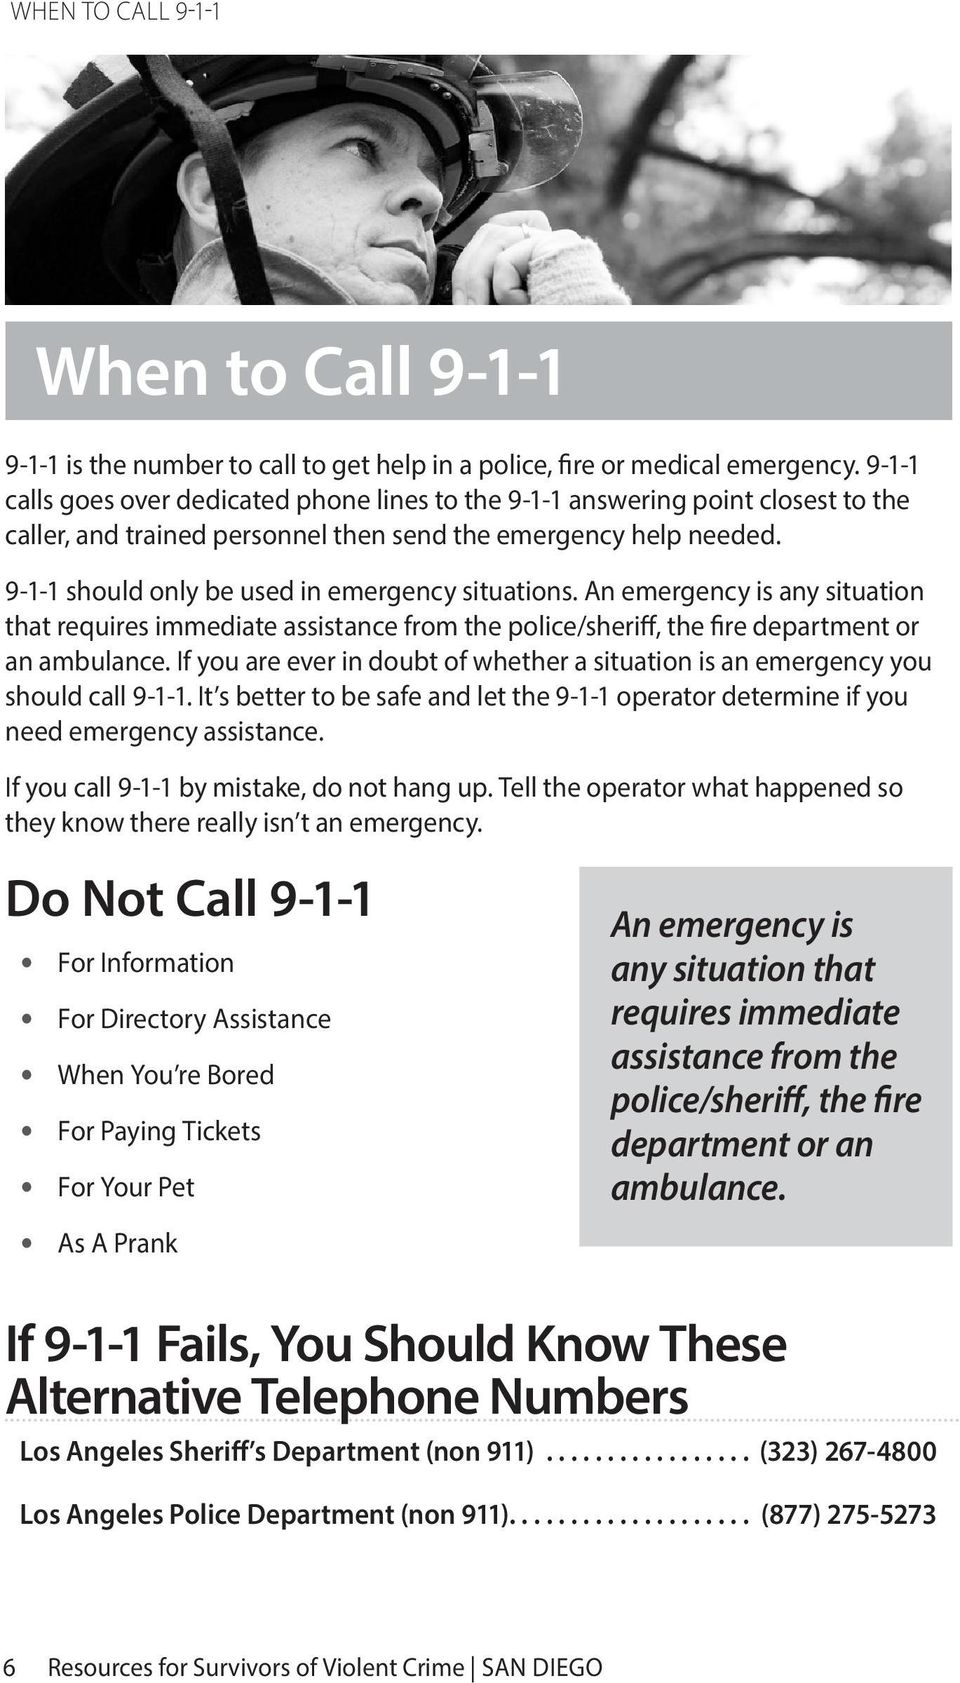 9-1-1 should only be used in emergency situations. An emergency is any situation that requires immediate assistance from the police/sheriff, the fire department or an ambulance.